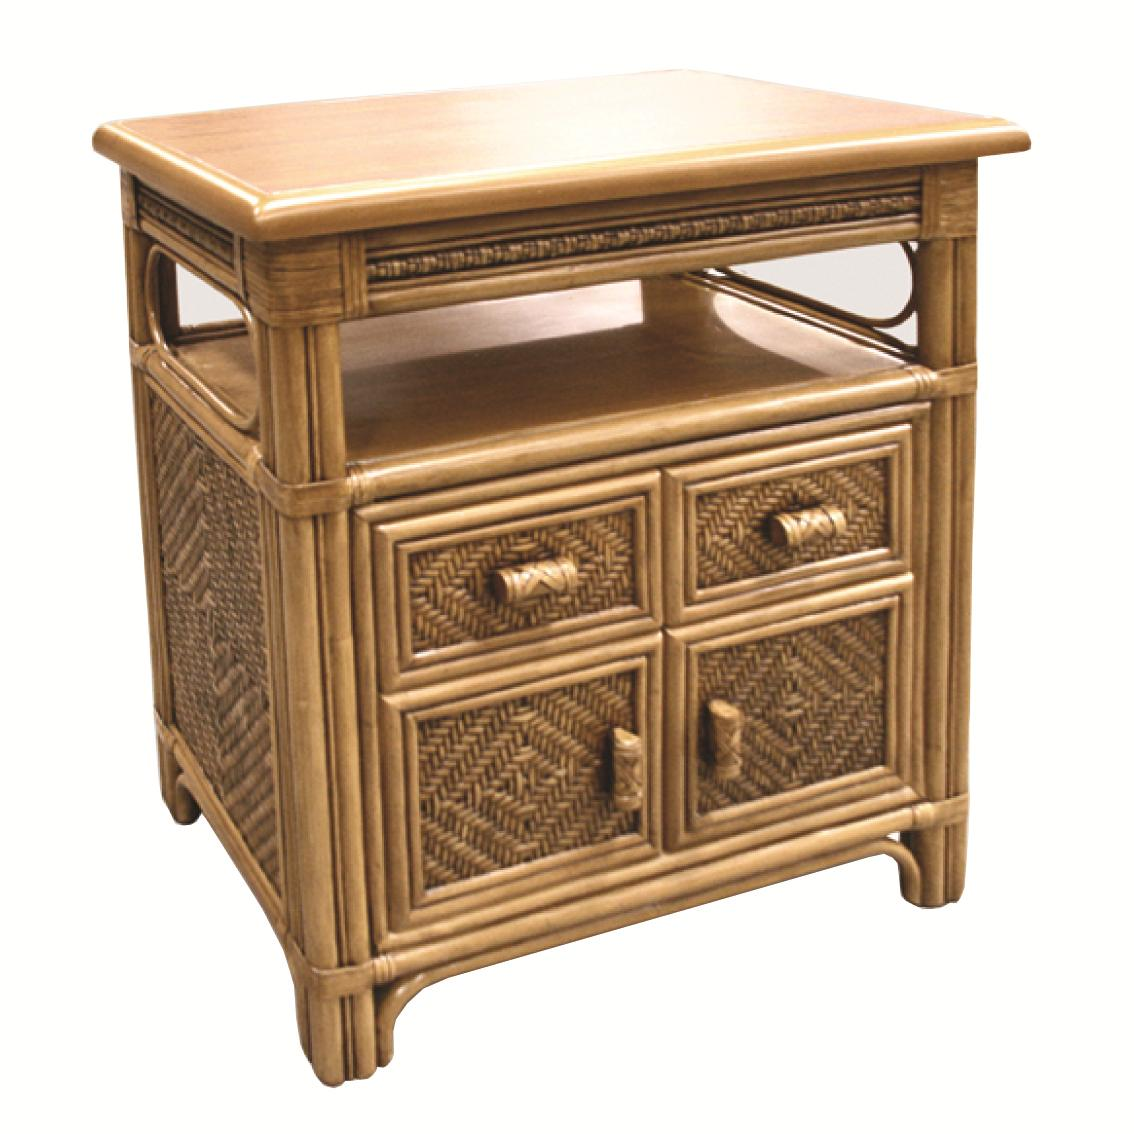 321 Collection Wicker Rattan Cabinet by Capris Furniture at Esprit Decor Home Furnishings